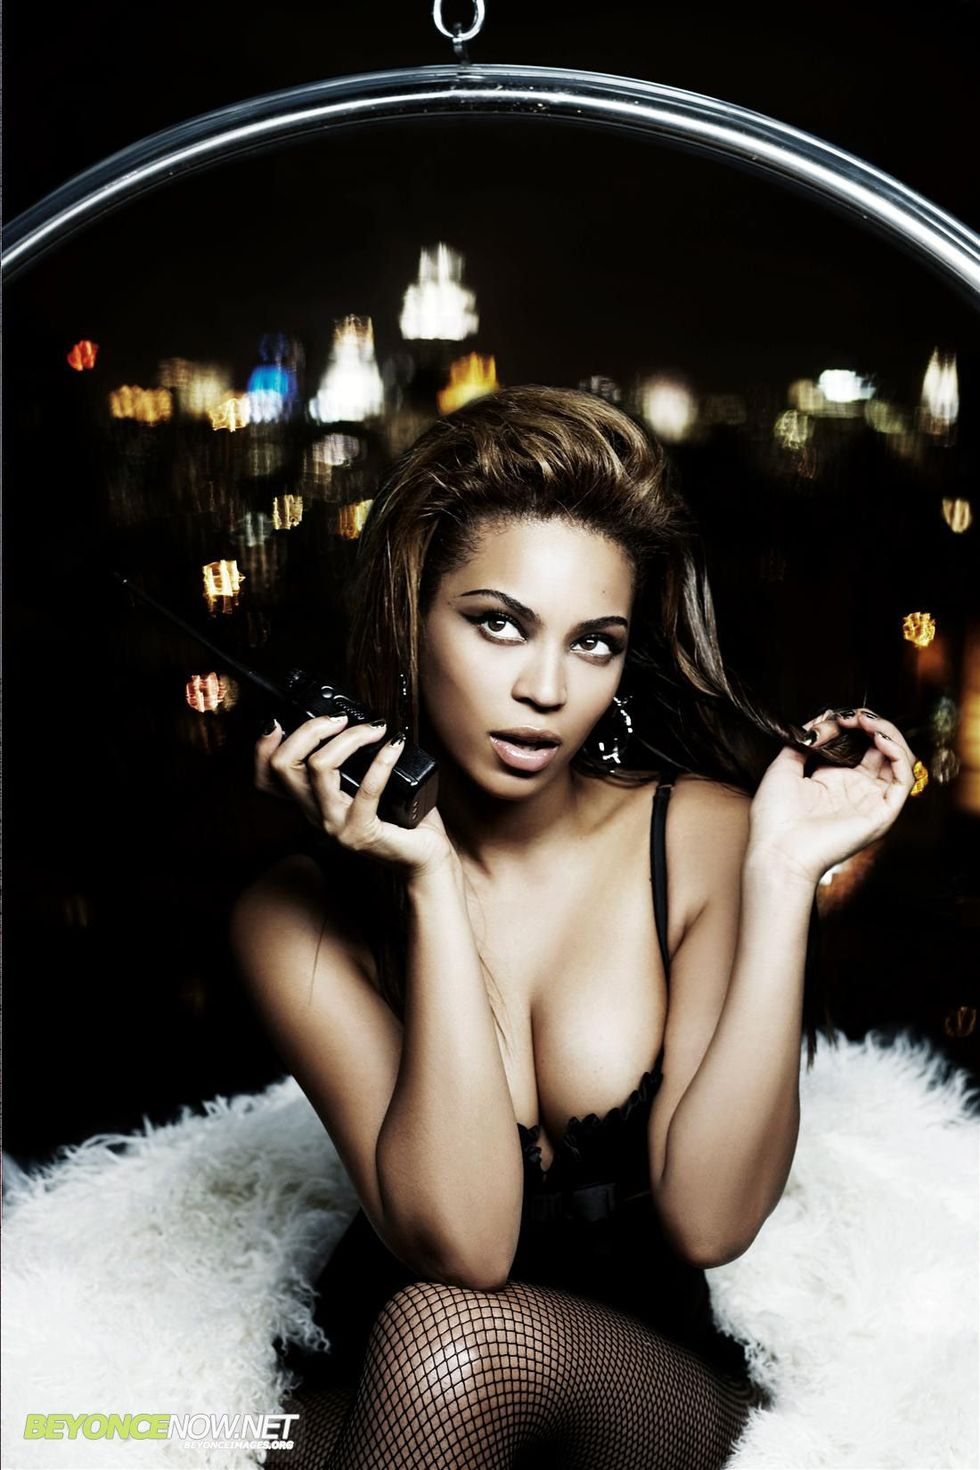 beyonce-knowles-giant-magazine-photoshoot-01